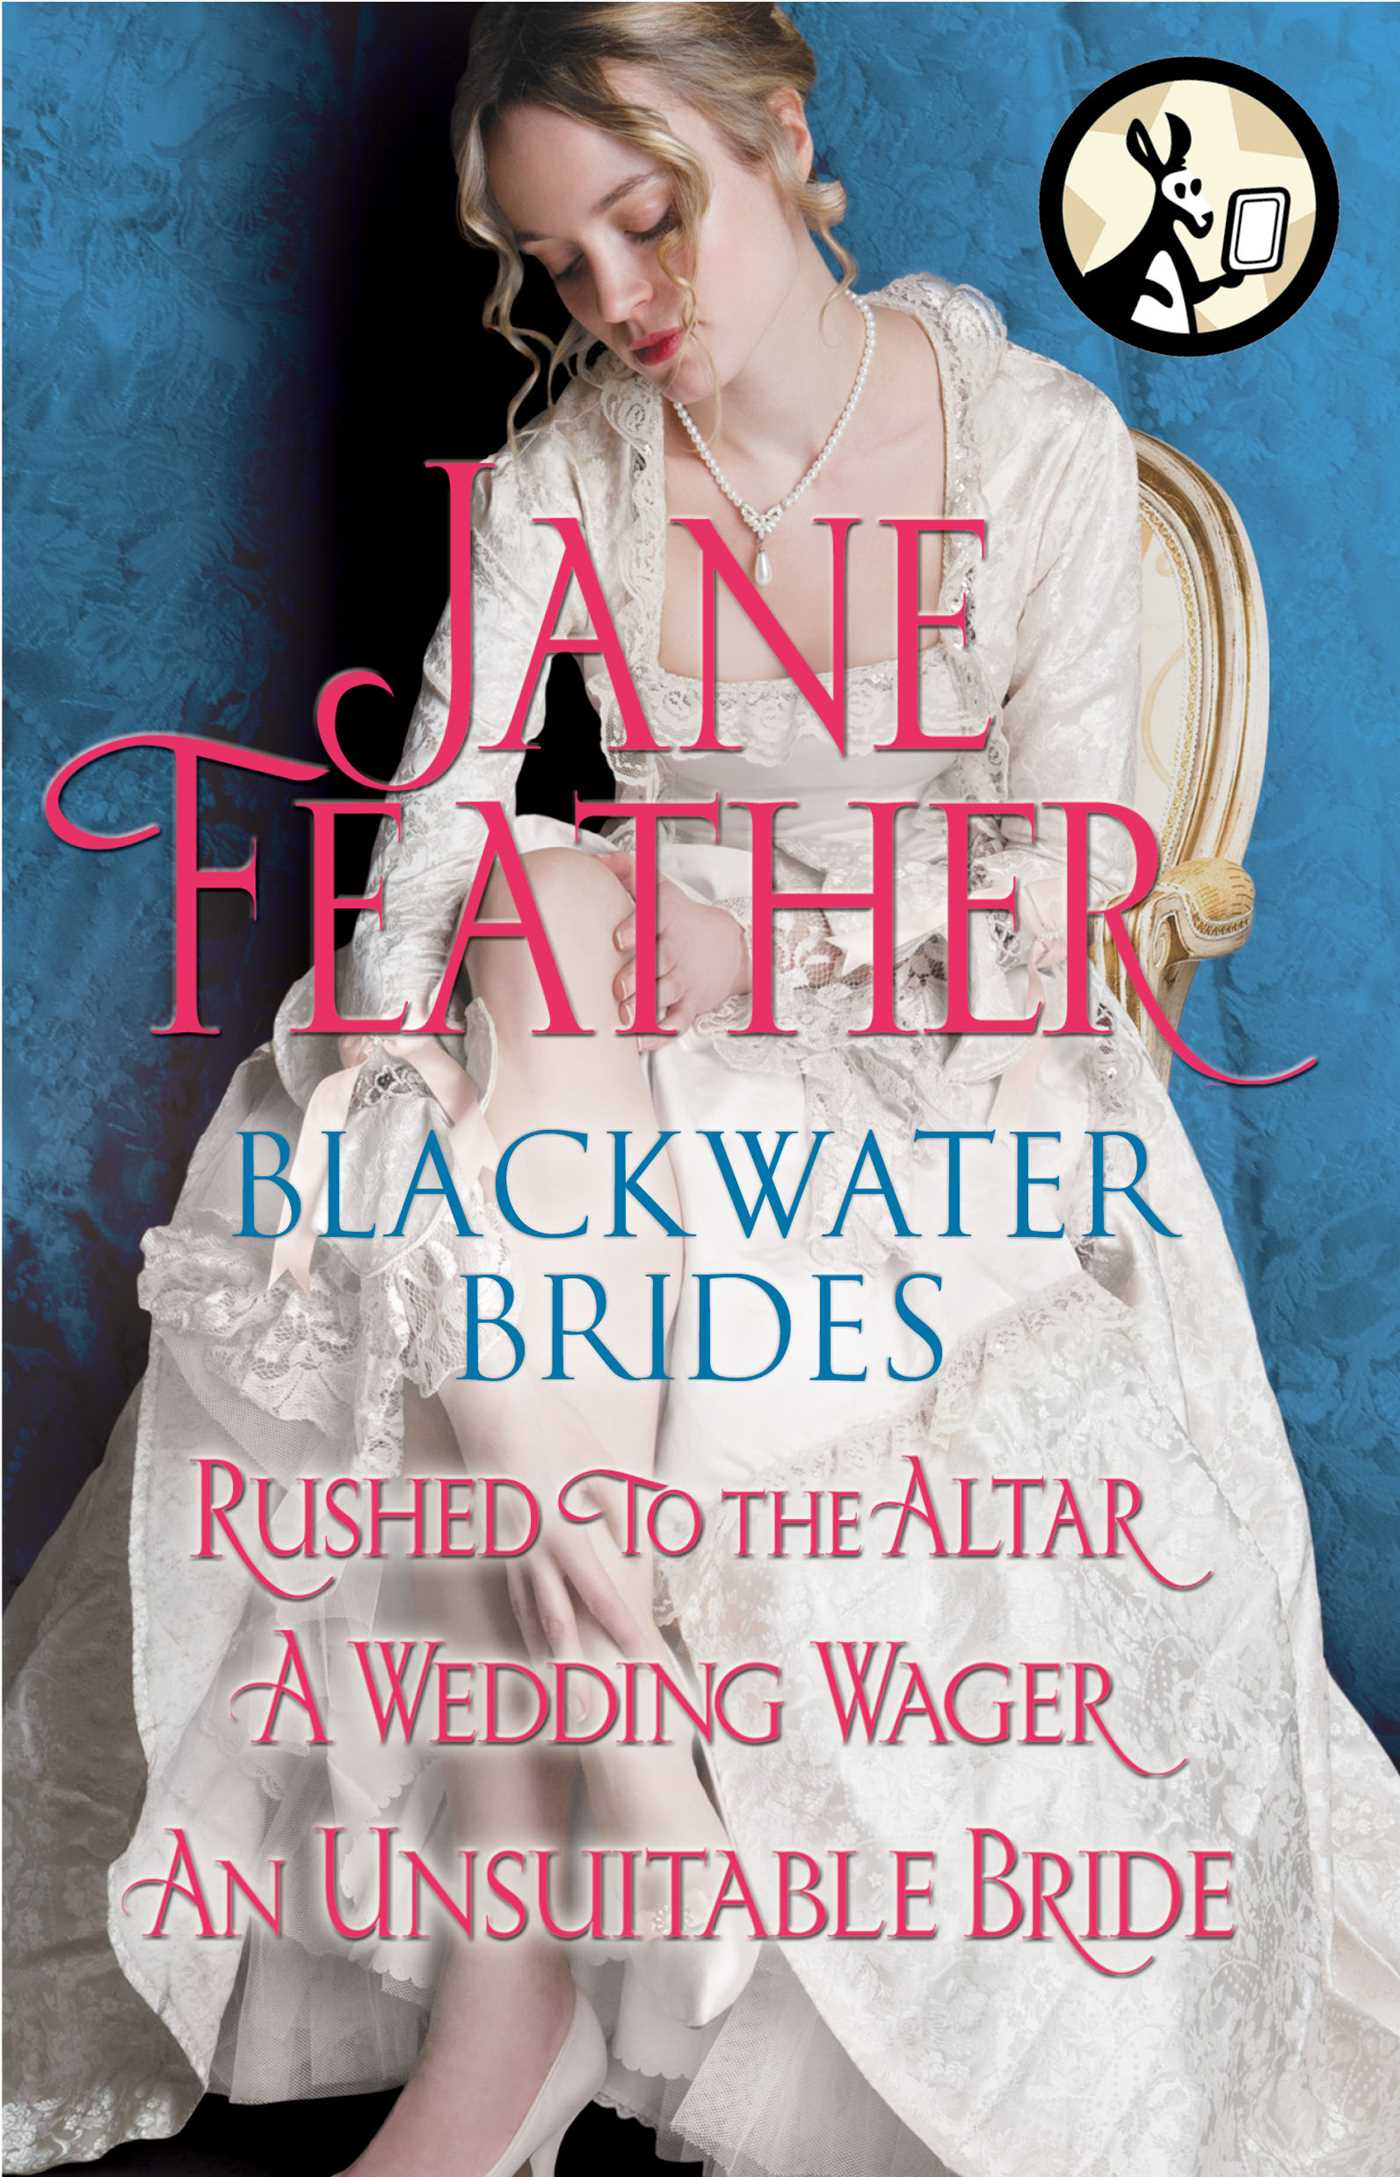 Blackwater brides rushed to the altar a wedding wager an blackwater brides rushed to the altar a wedding wager an unsuitable bride ebook by jane feather official publisher page simon schuster fandeluxe Document